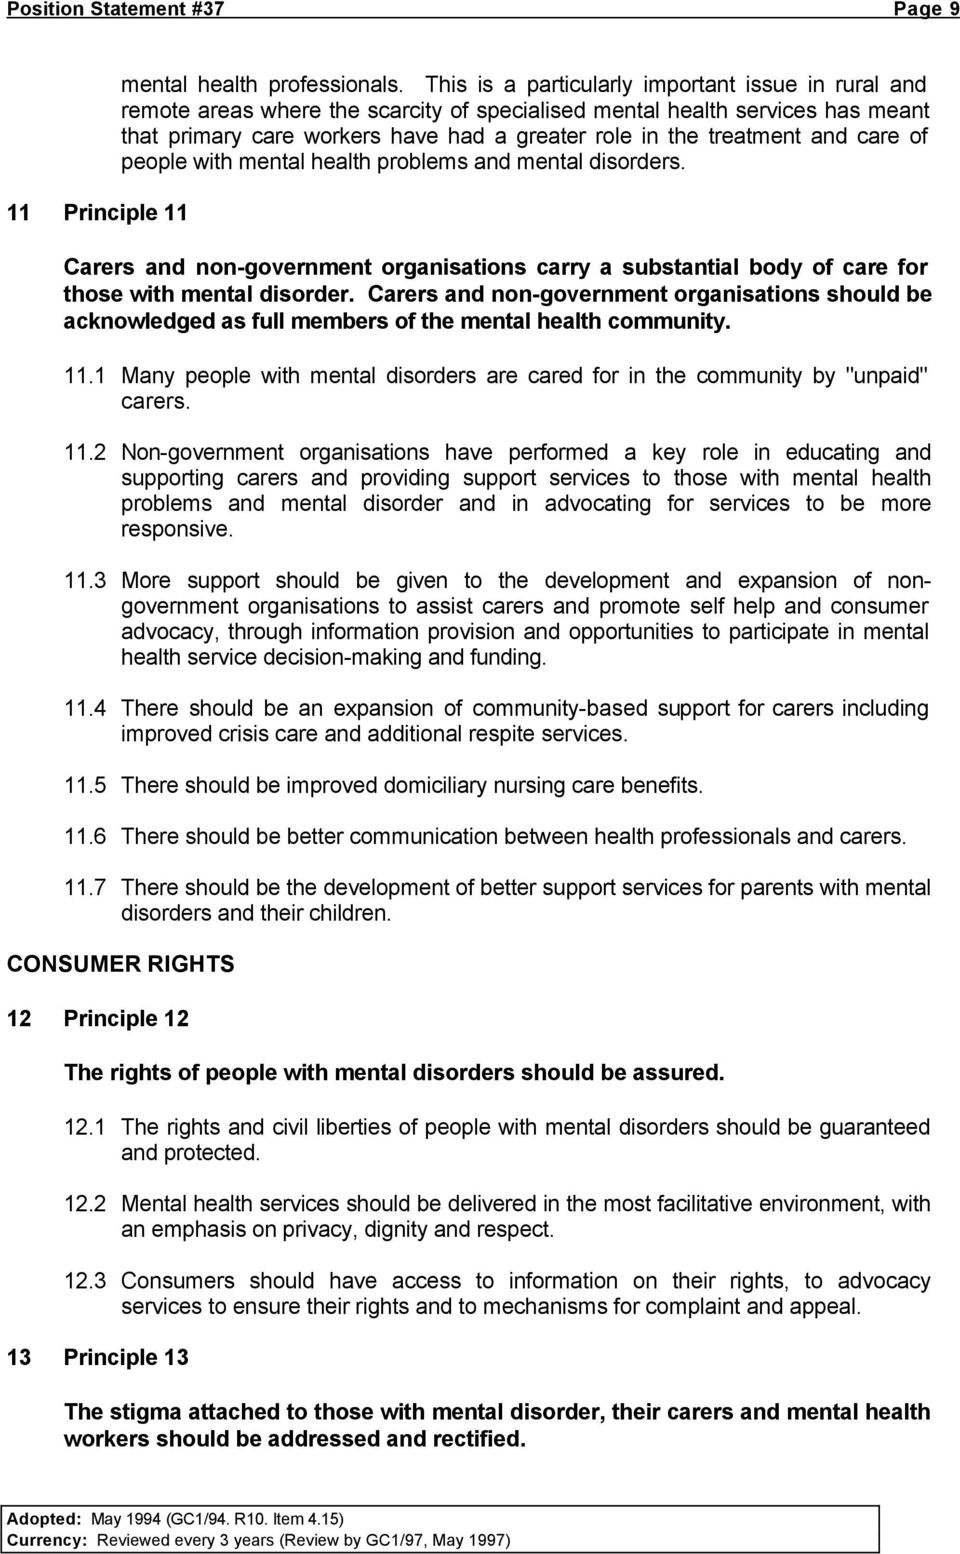 and care of people with mental health problems and mental disorders. Carers and non-government organisations carry a substantial body of care for those with mental disorder.